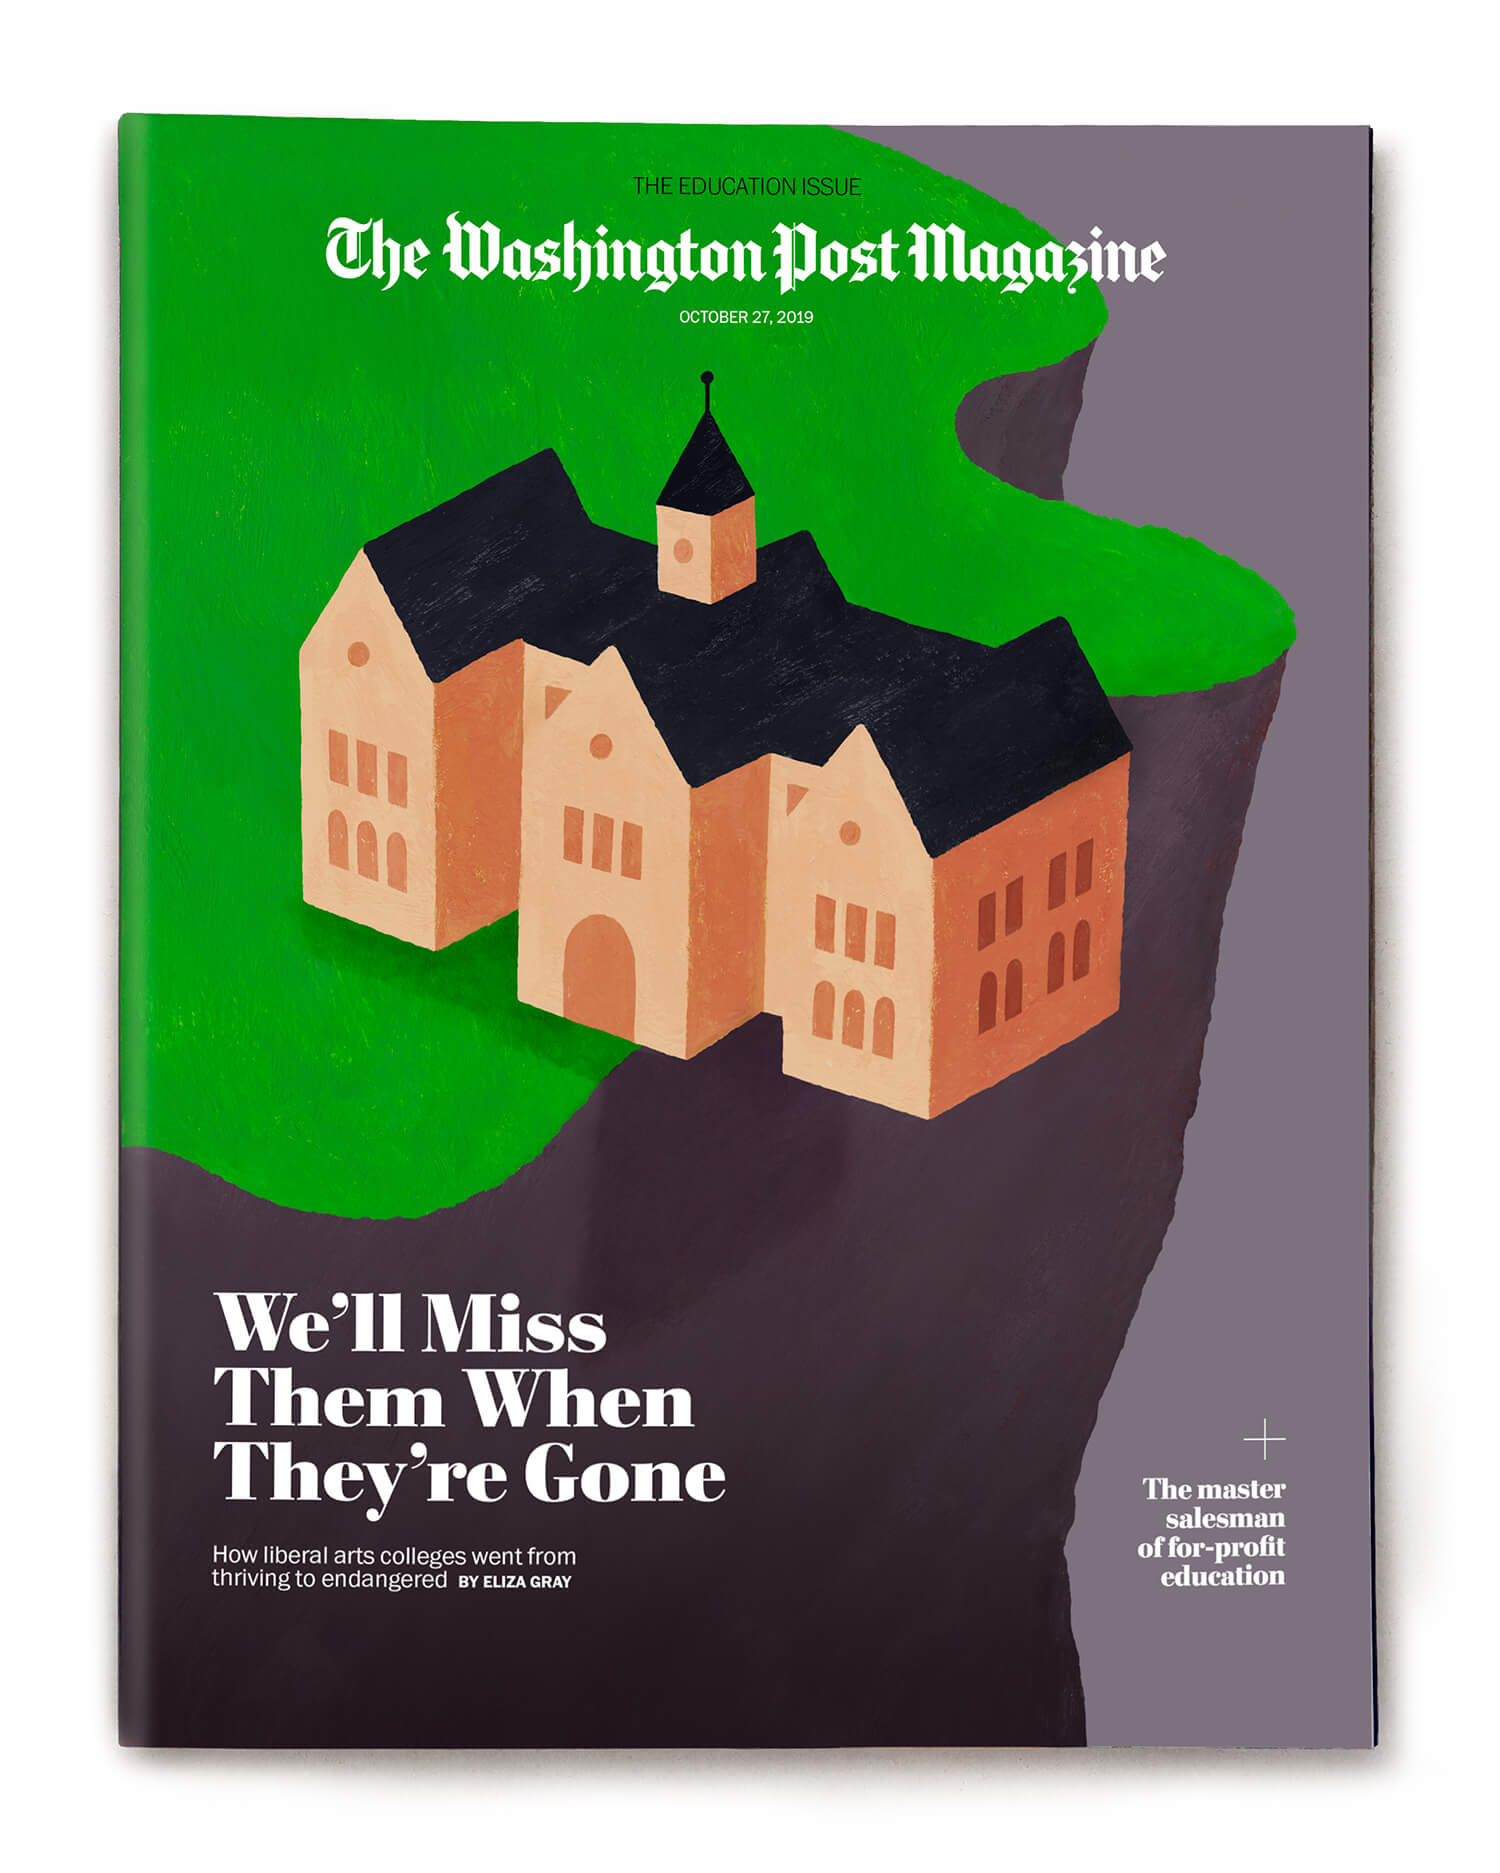 The Education Issue cover